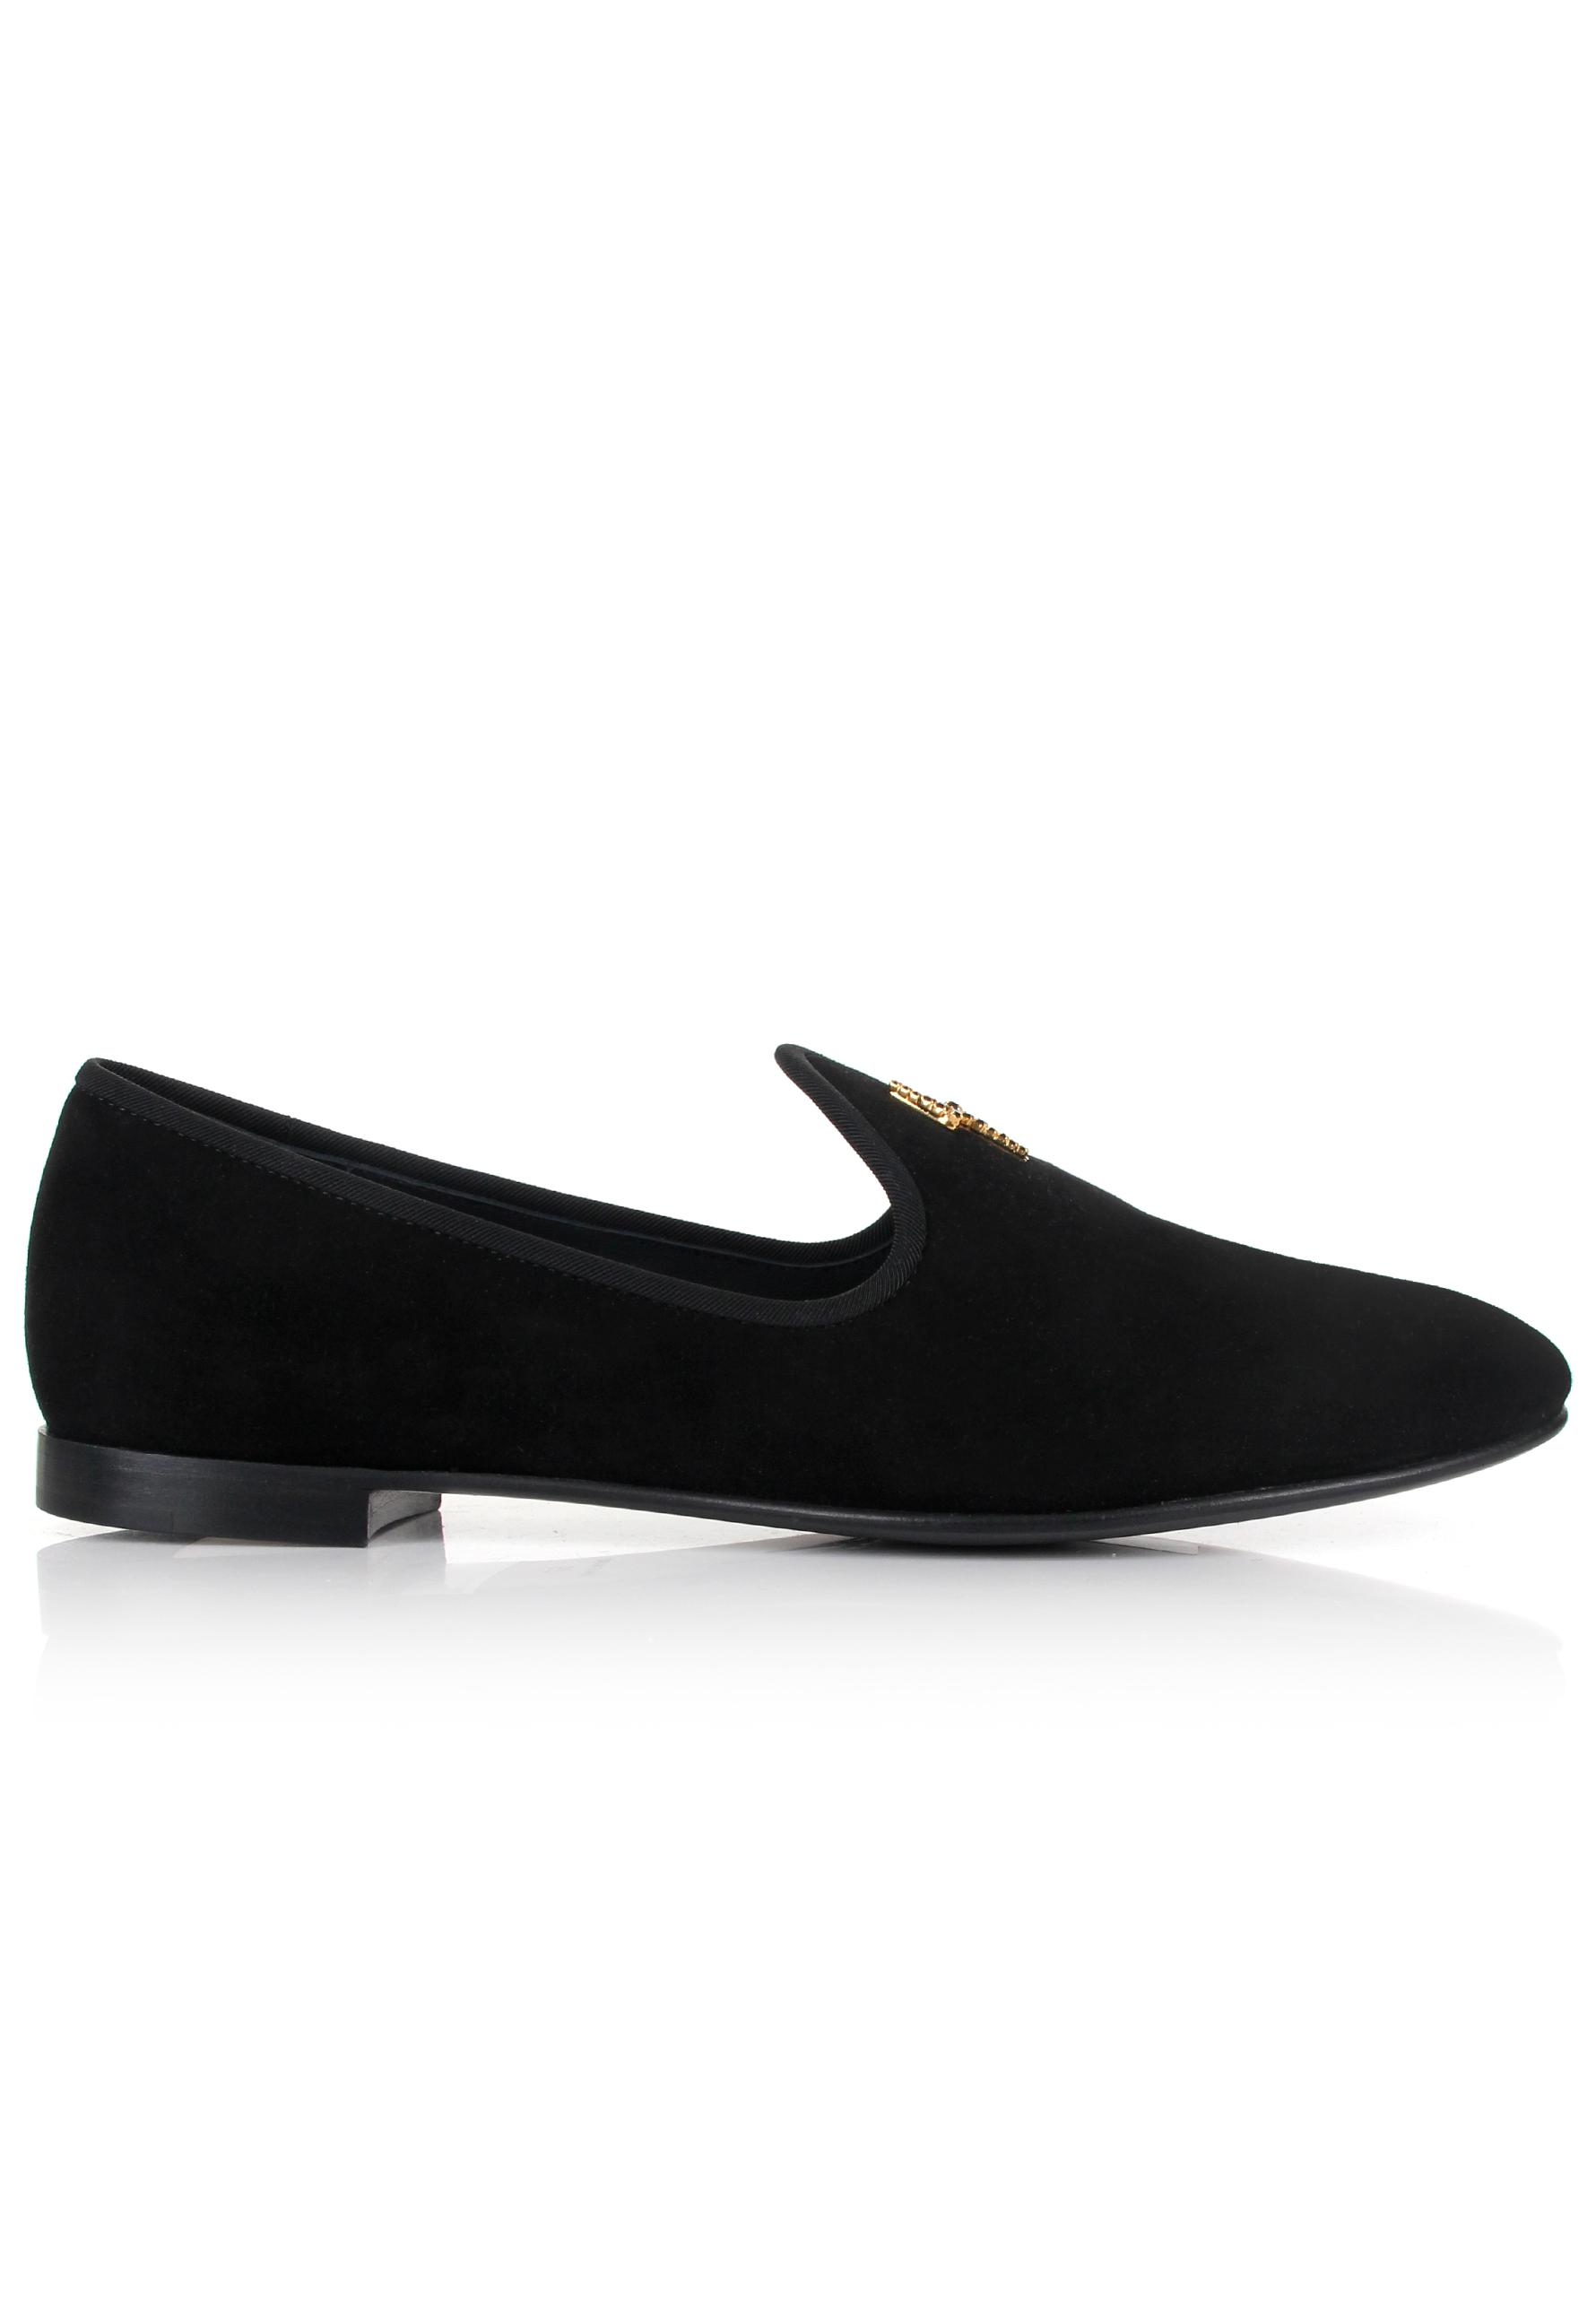 lightening bolt loafers - Black Giuseppe Zanotti hGDhEk